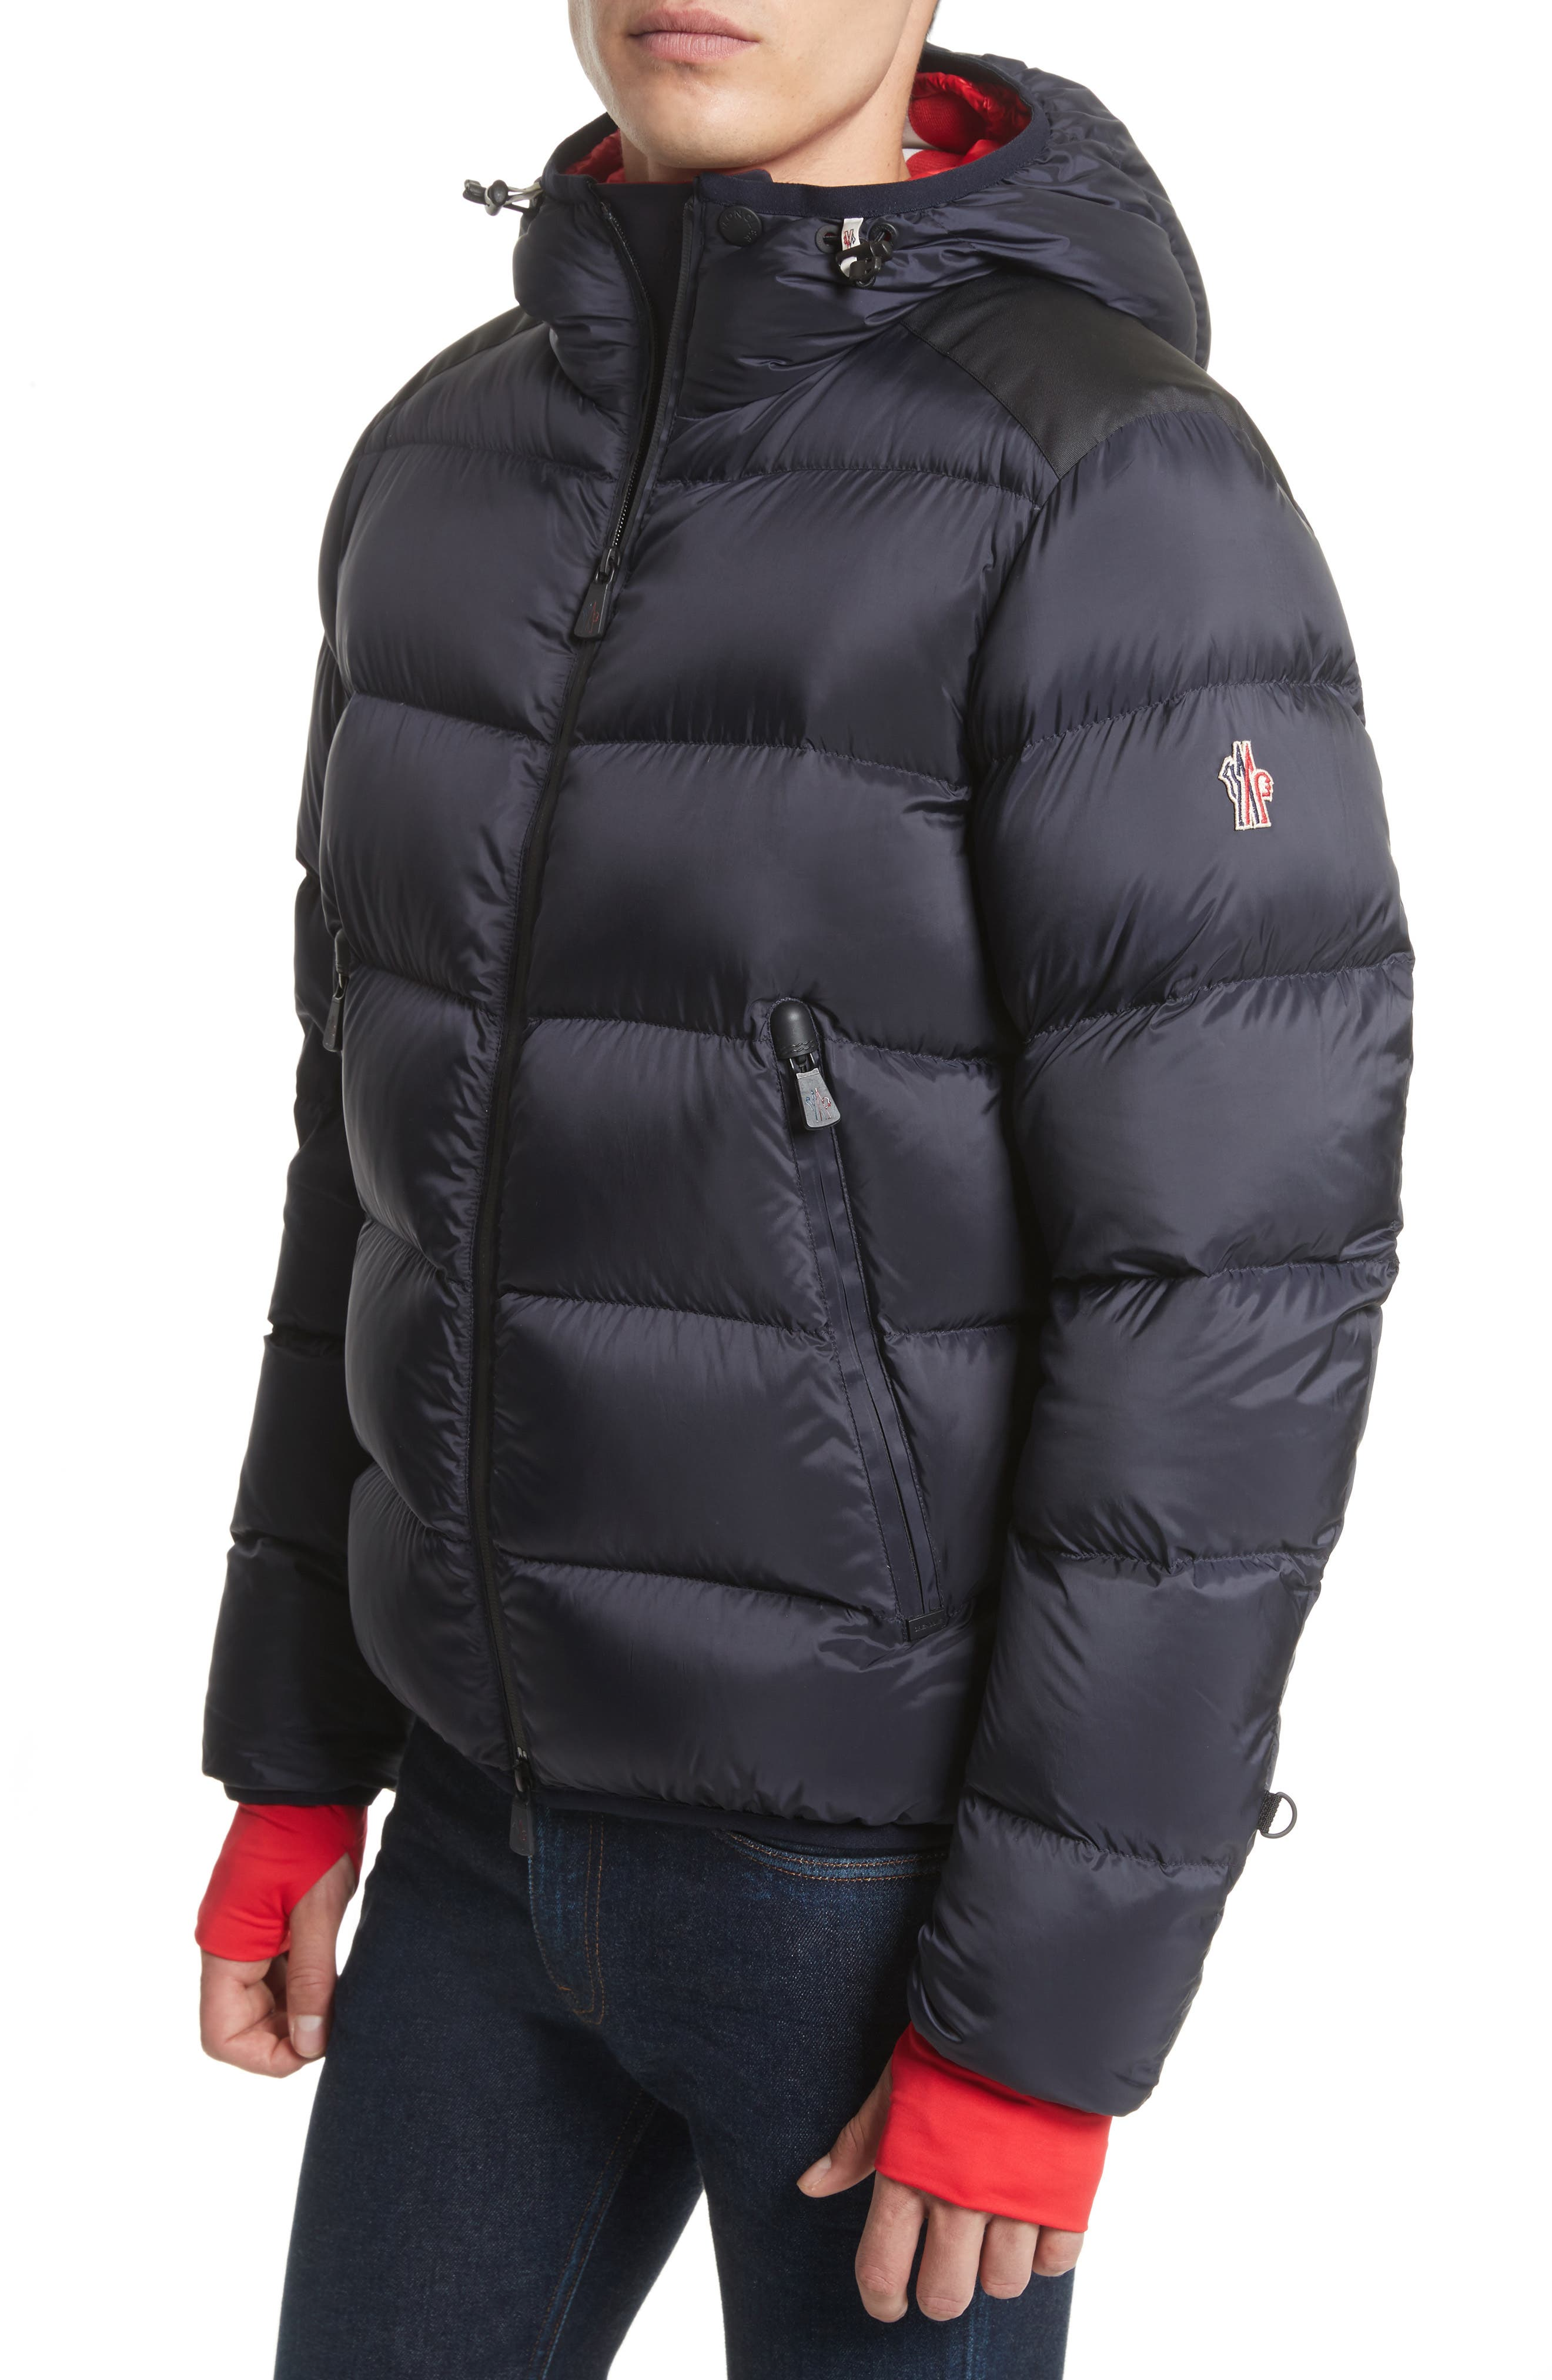 Grenoble Hintertux Hooded Down Jacket,                         Main,                         color, Navy/ Red